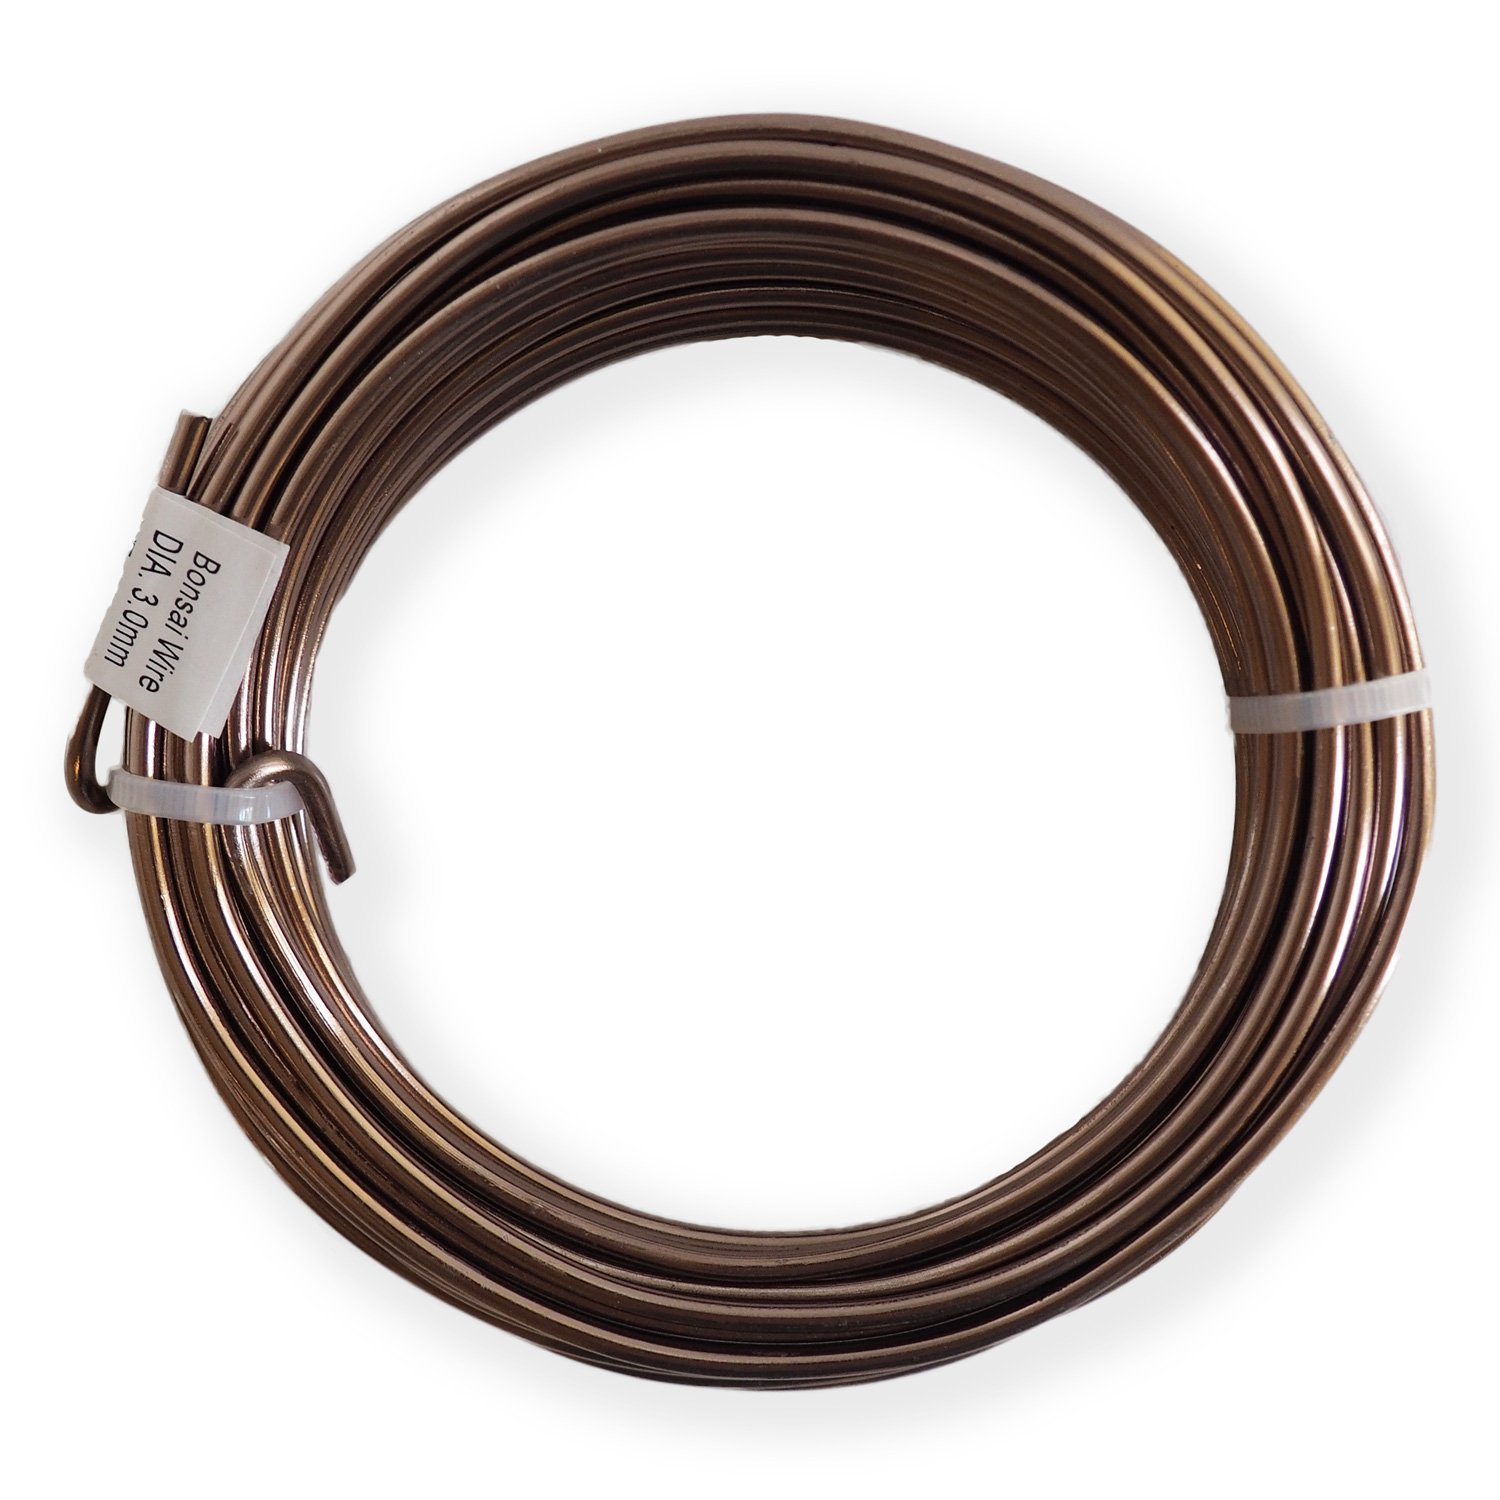 Anodized Aluminum 4.0mm Bonsai Training Wire 250g Large Roll (23 feet) - Choose Your Size and Color (4.0mm, Brown)